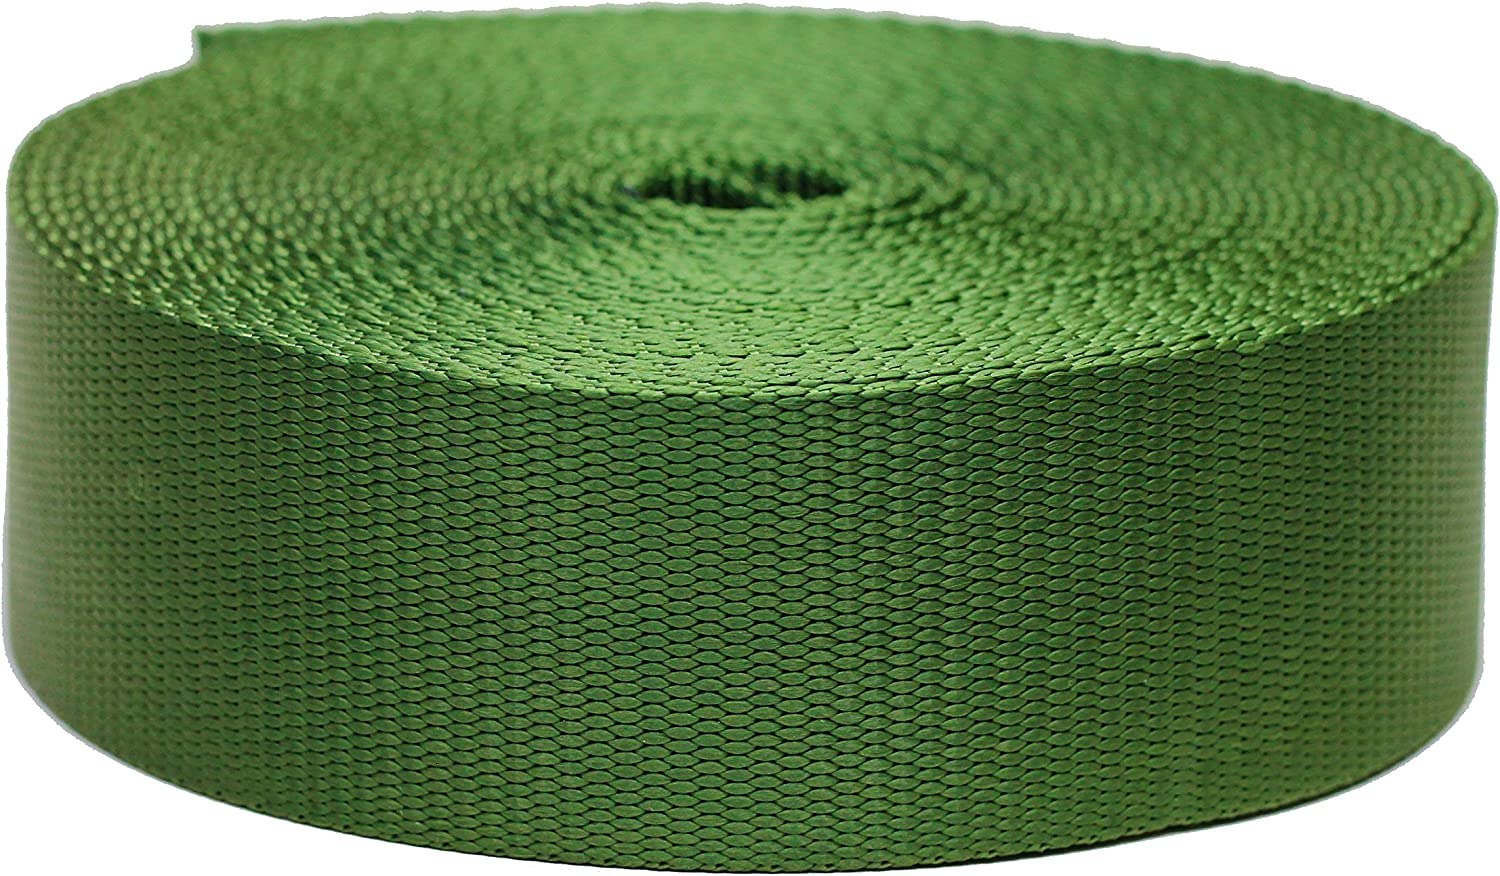 Oakland Mall Strapworks Colored Flat Nylon Webbing - Strap Craft Max 42% OFF For Arts And